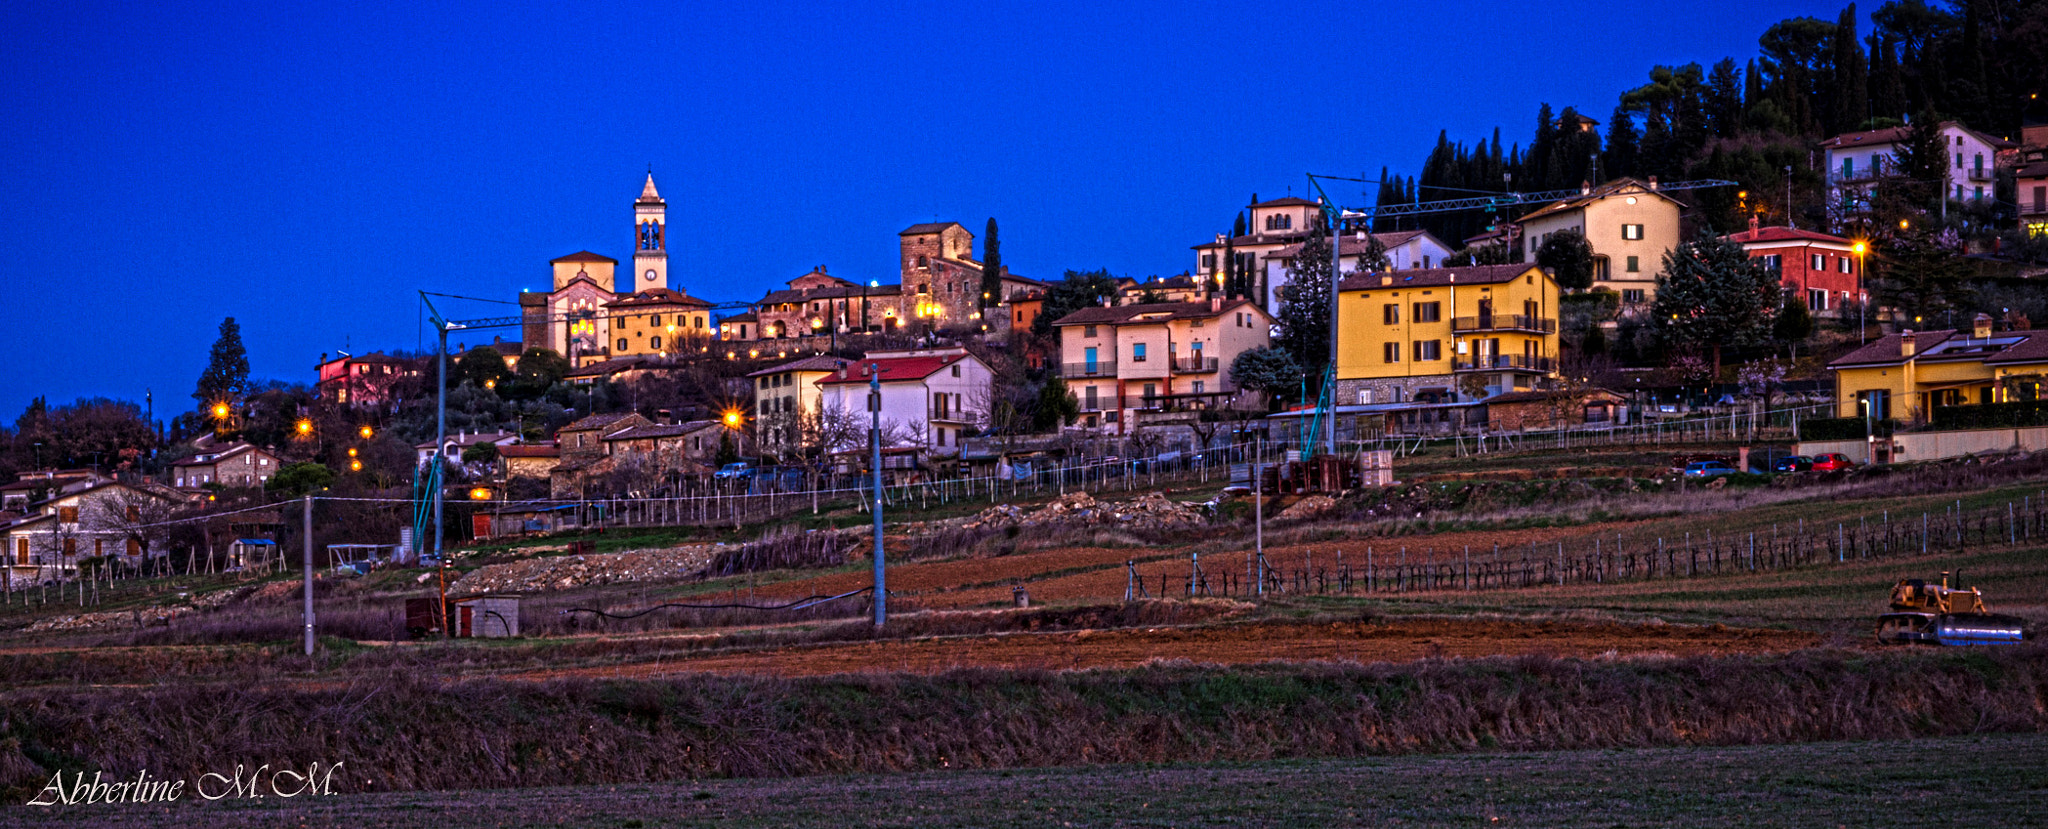 Photograph Solomeo by Massimo Moretti on 500px